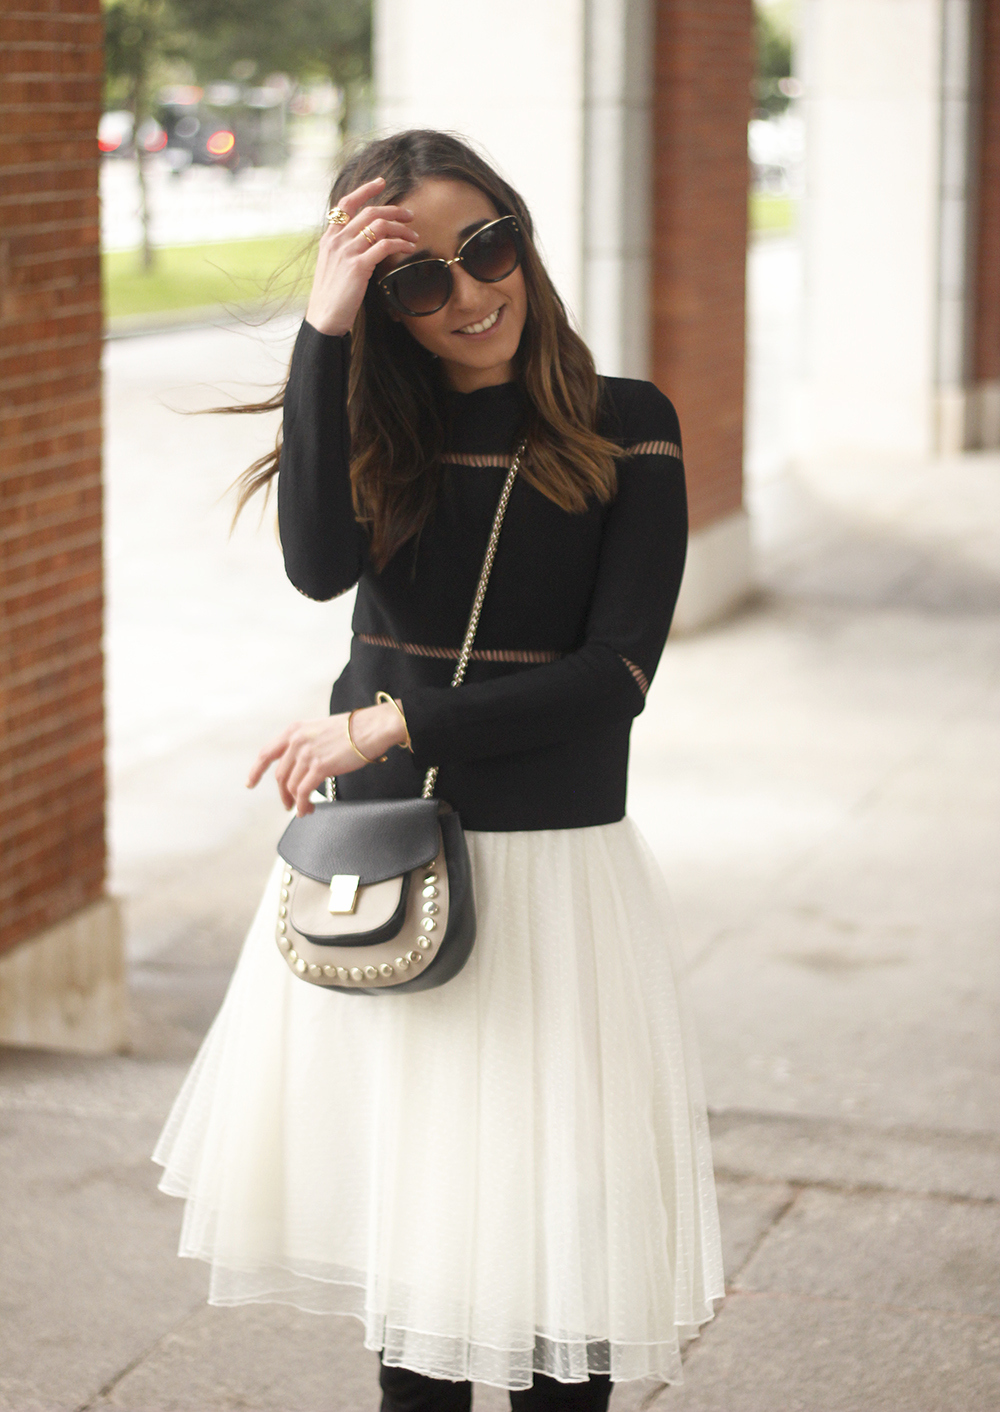 Tulle white skirt over the knee boots black sweater spring rainy day uterqüe bag fashion outfit15